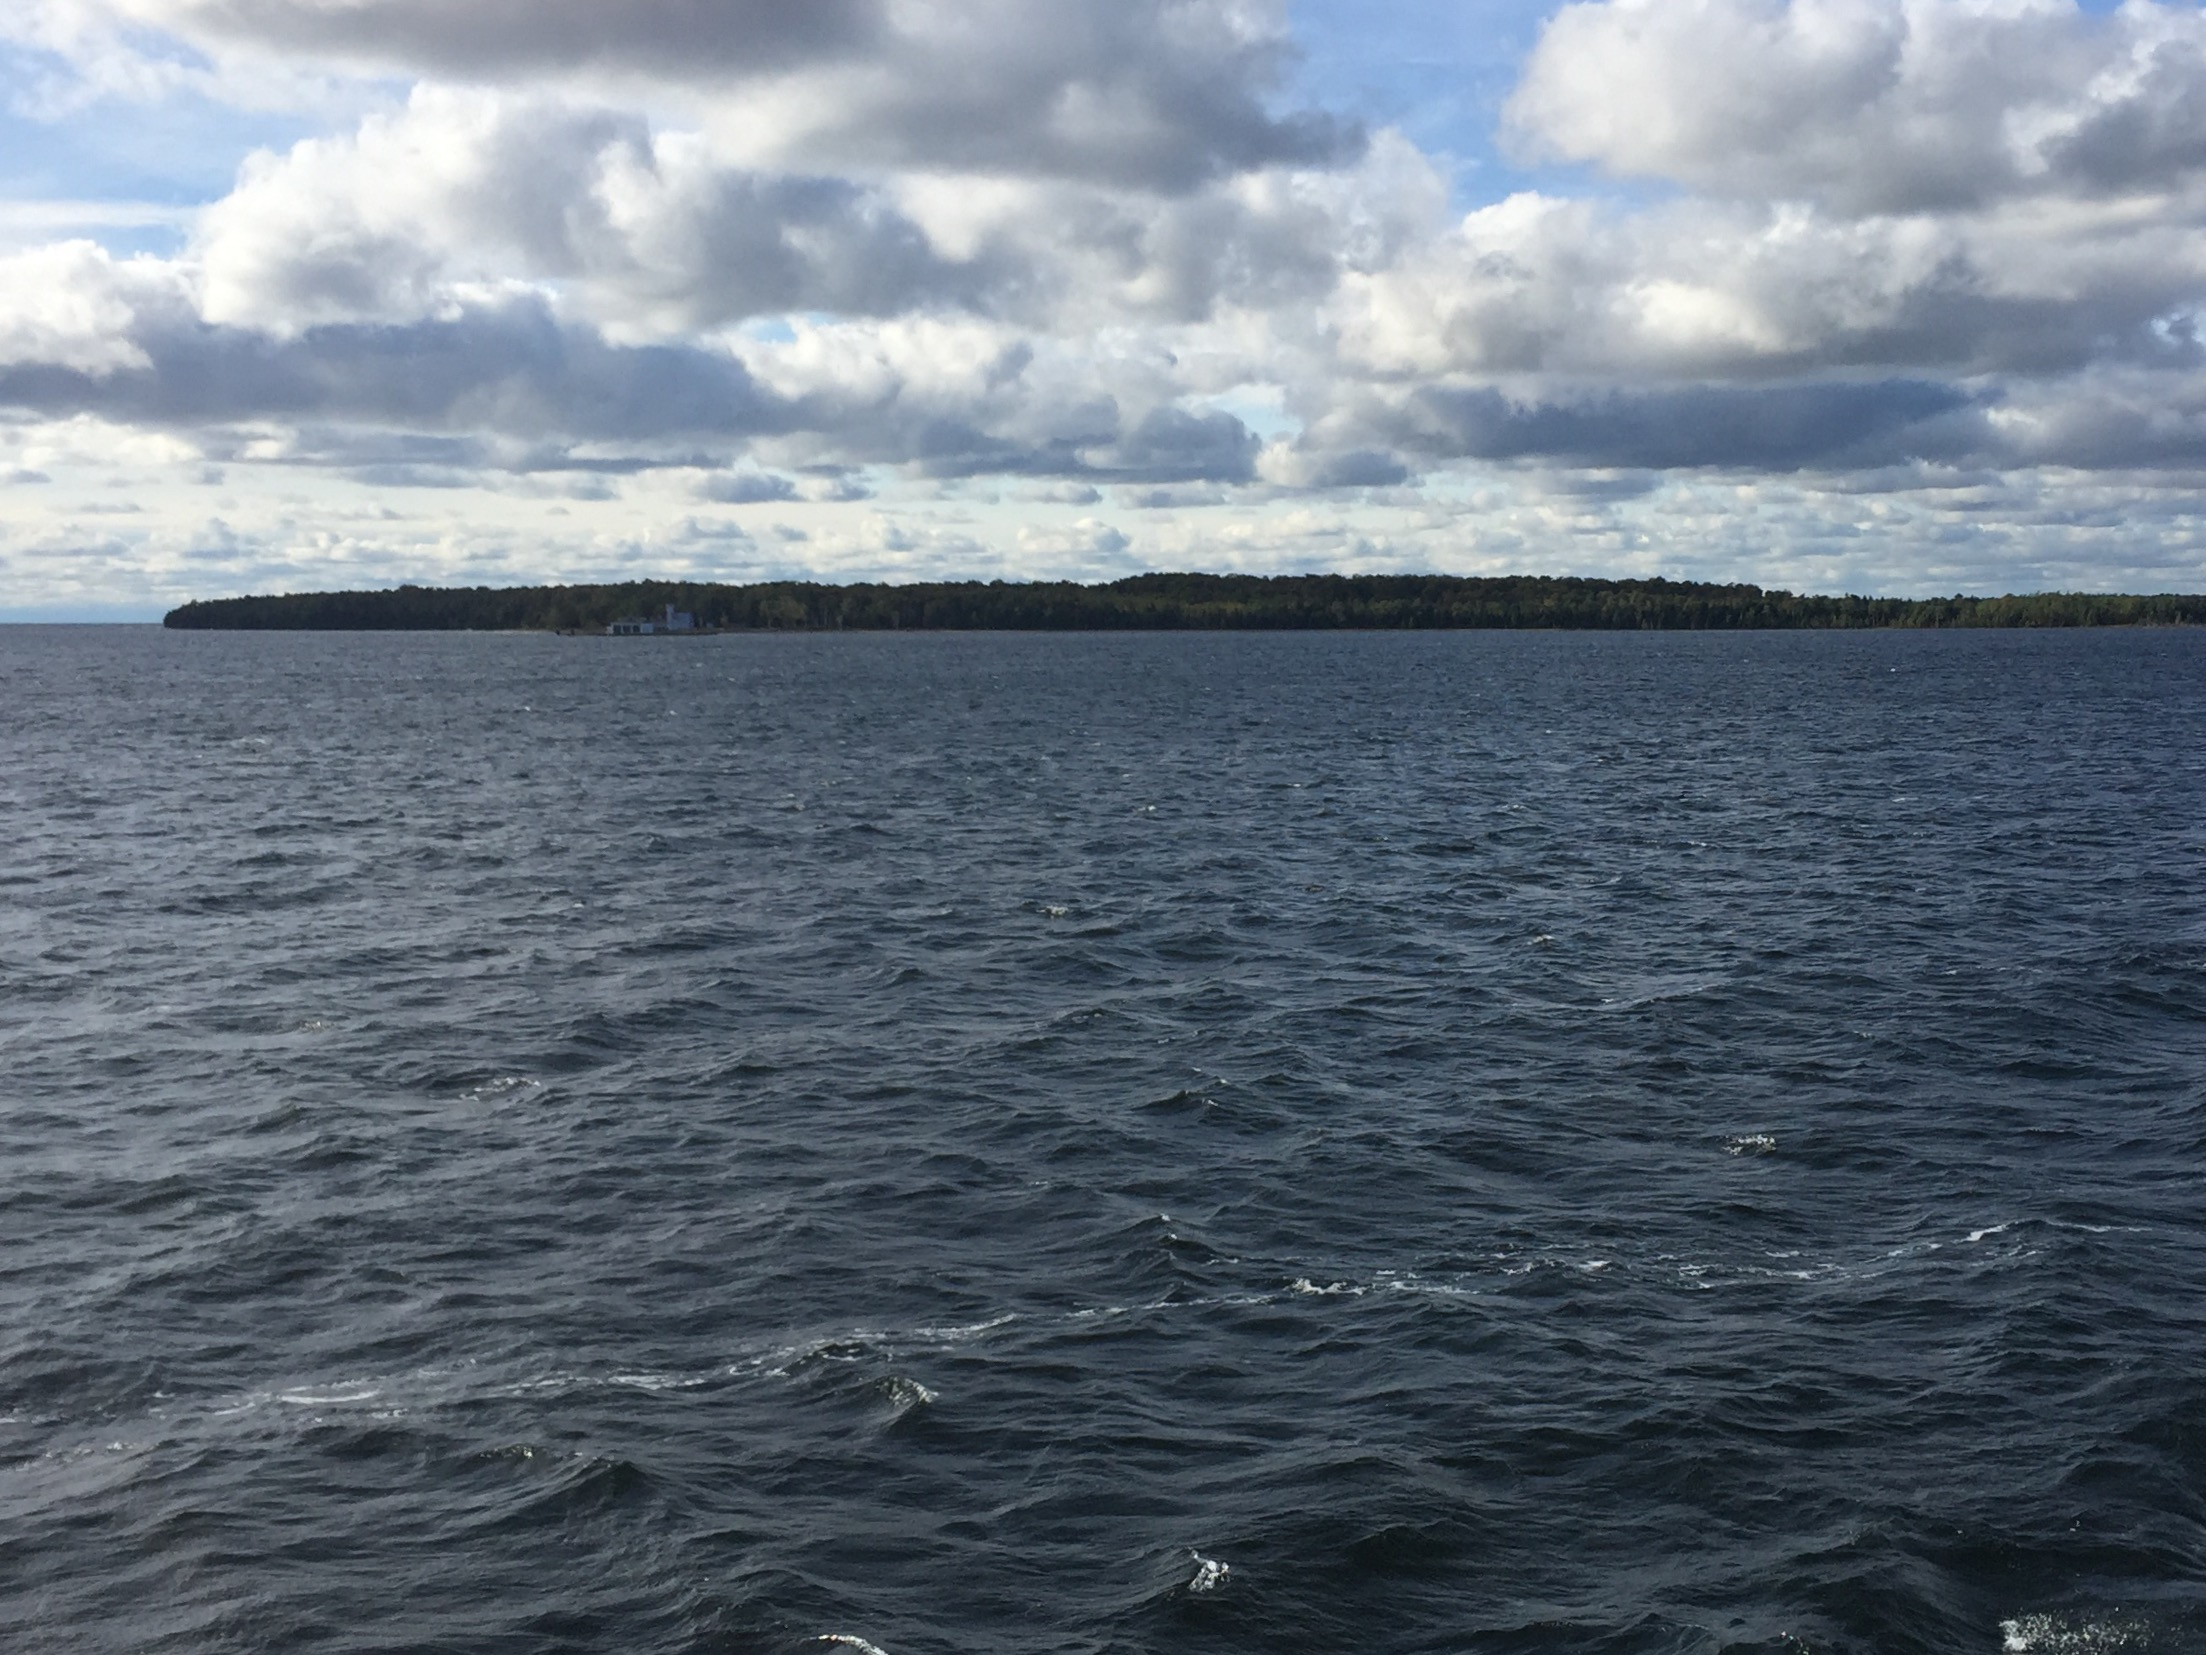 A view of Plum Island from the Washington Island Ferry, Oct. 11, 2017. (WLUK/Eric Peterson)